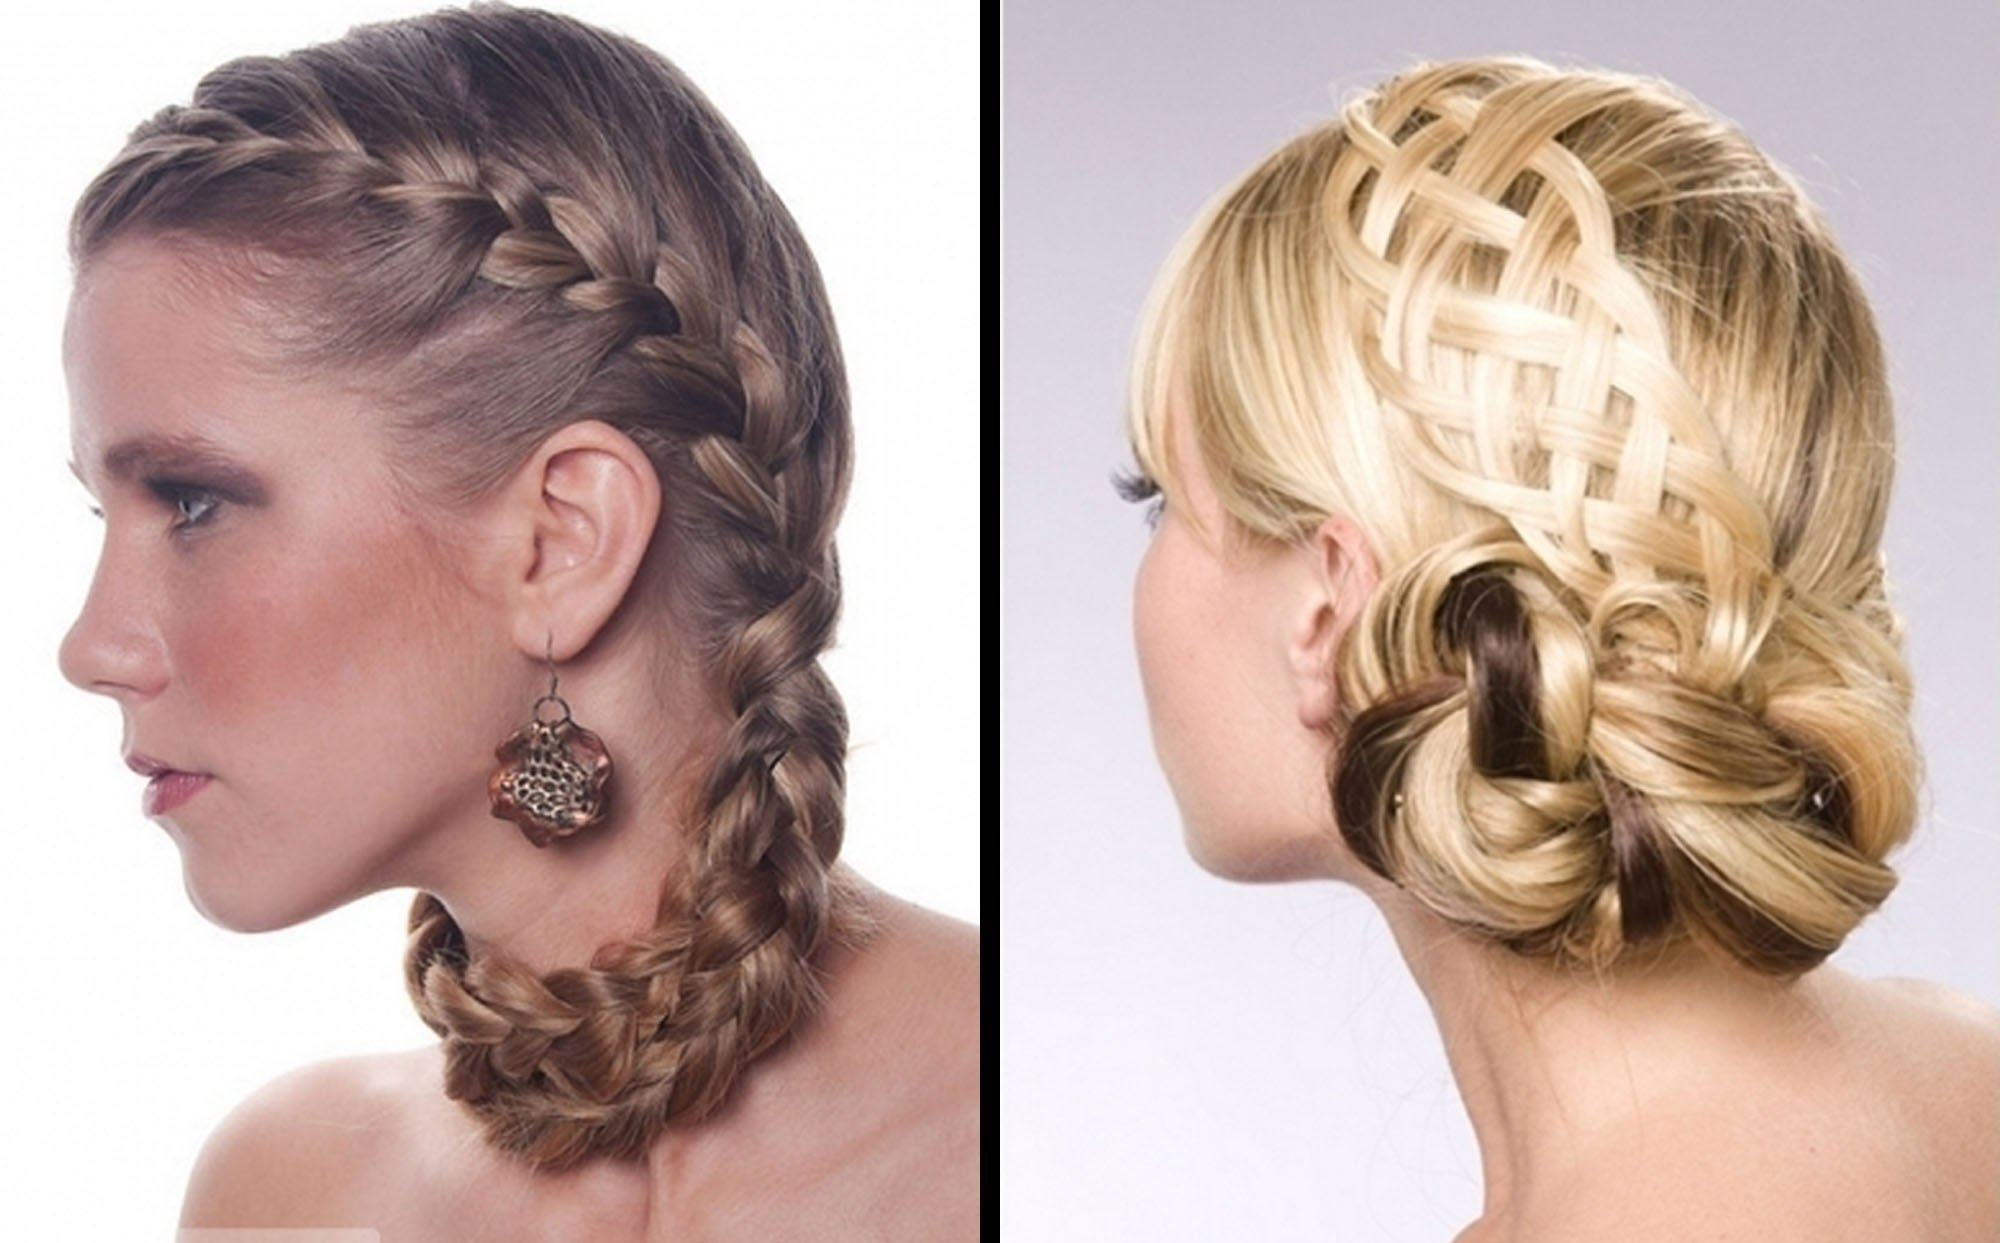 10 Beautiful Short Hair Ideas For Prom hairstyles prom for short hair easy medium hair styles ideas 35491 2020